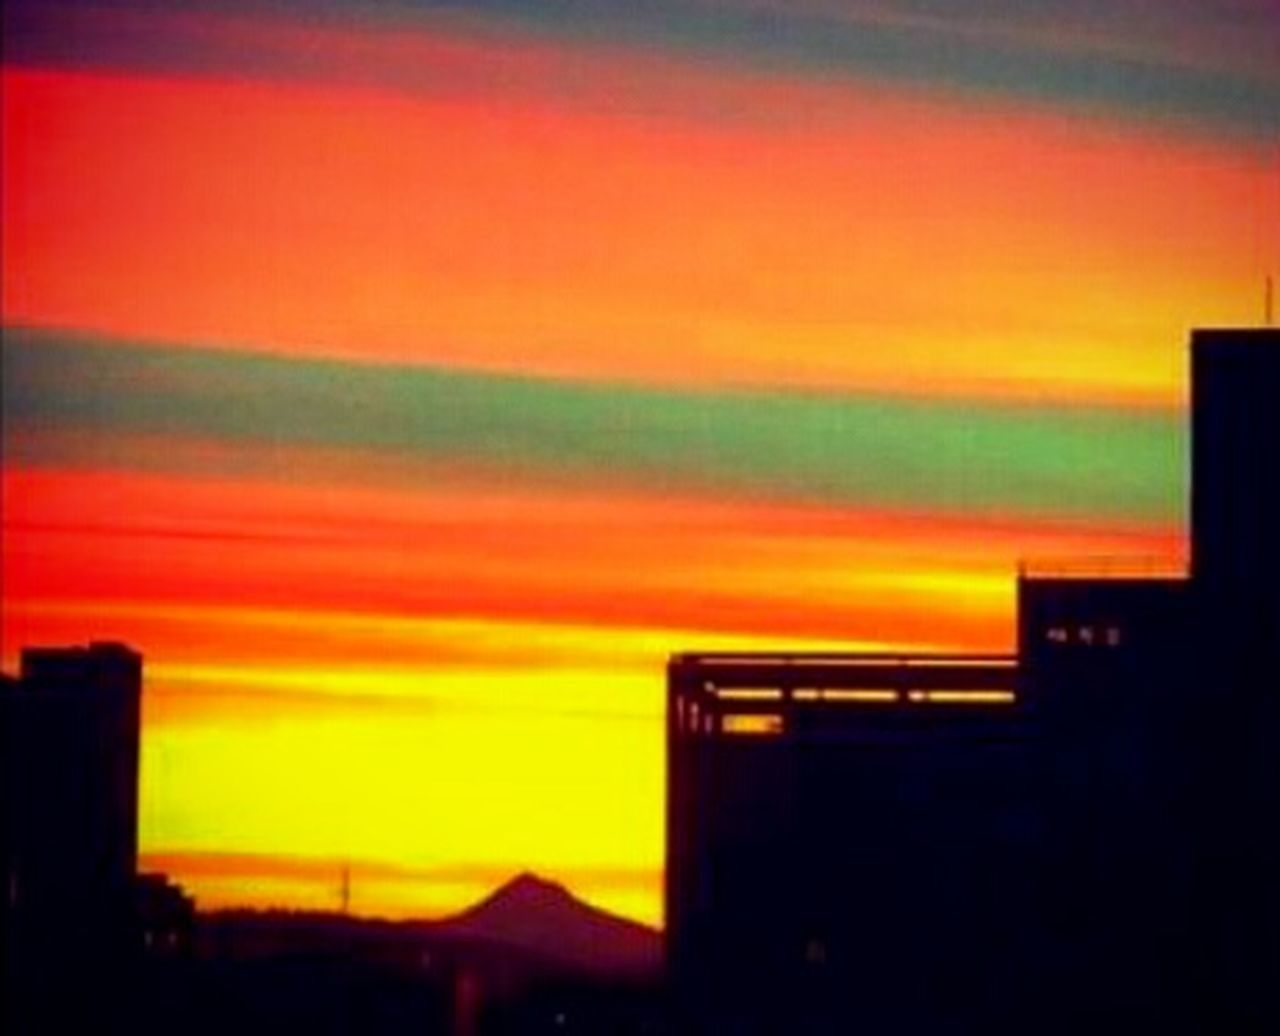 Sunset Orange Color Silhouette Illuminated Outdoors No People Dusk Multi Colored Building Exterior Built Structure Night Nature Sky Architecture Neon Beauty In Nature City VariousColors Awesome_captures Art Is Everywhere Moments In Time! My Year My View Getting Inspired Cellphone Photography Creative Photography